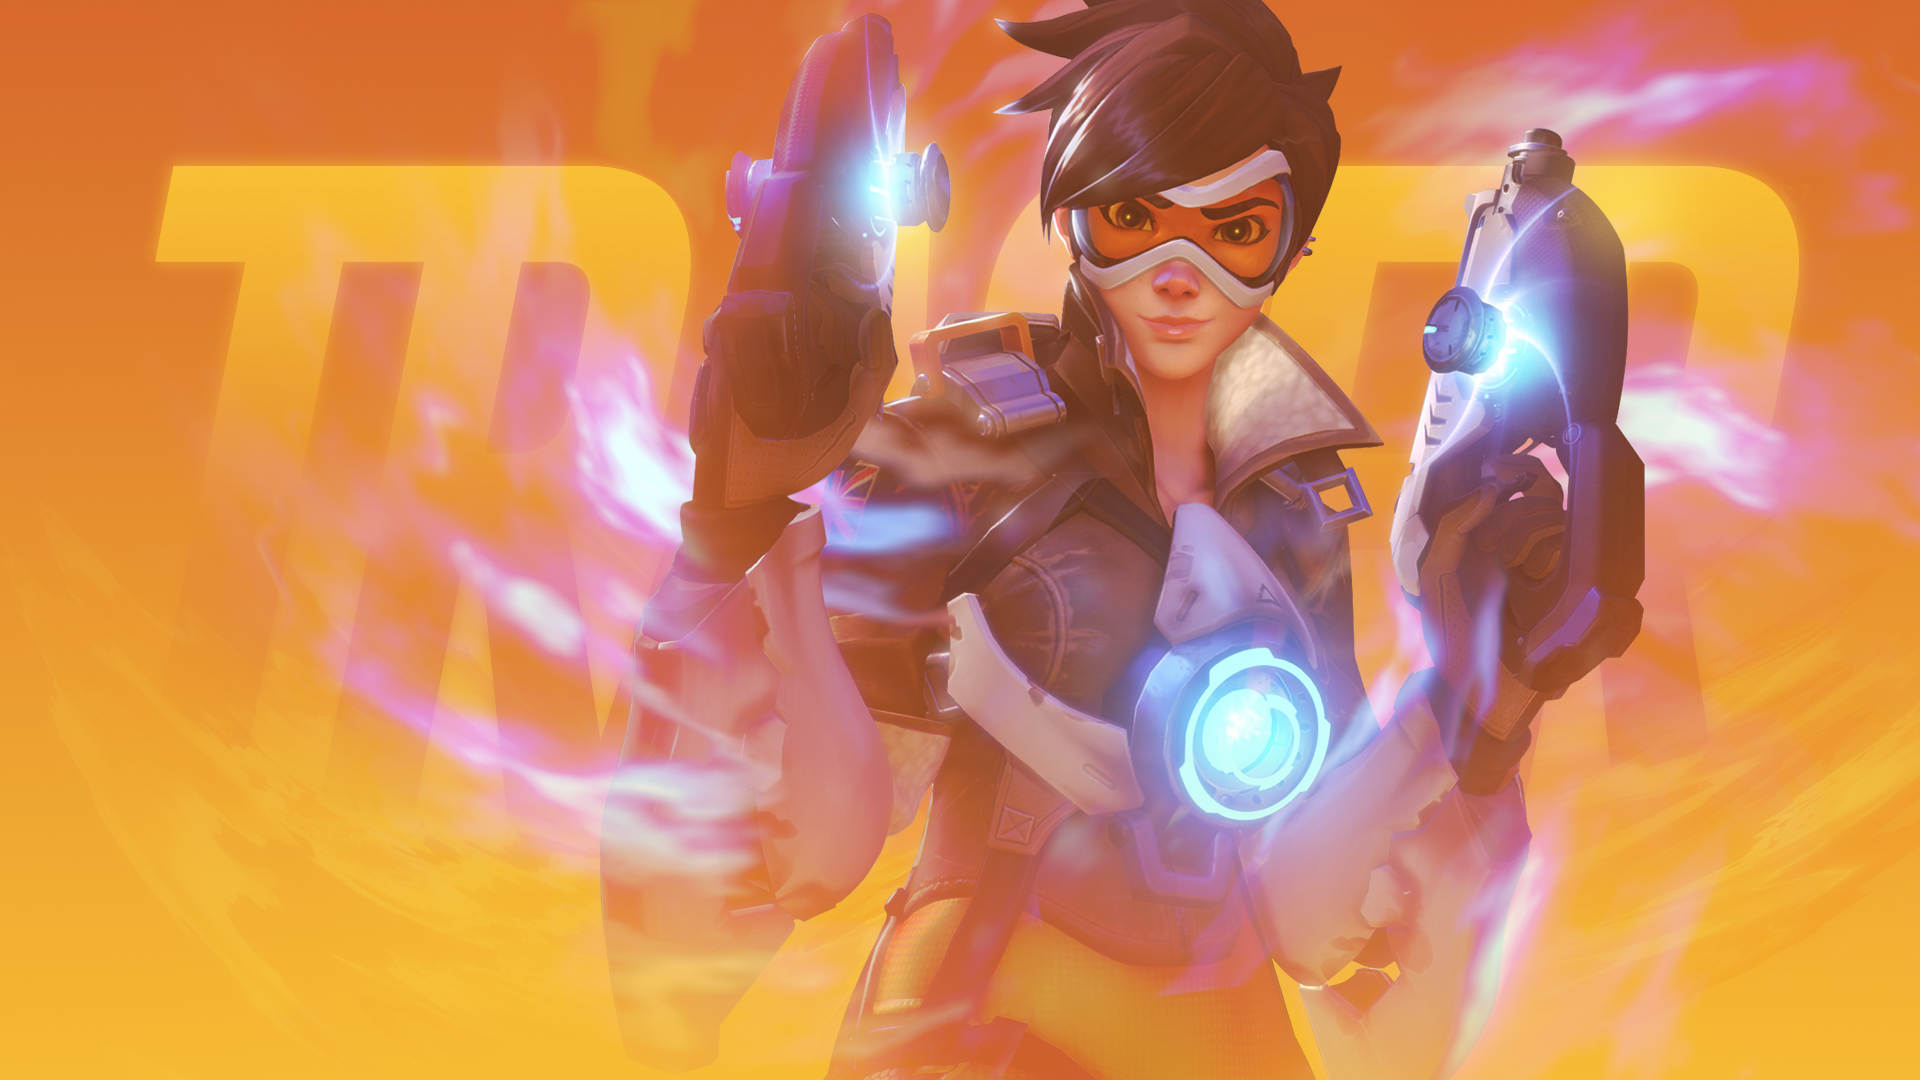 Tracer Overwatch Wallpaper Full Hd Pictures